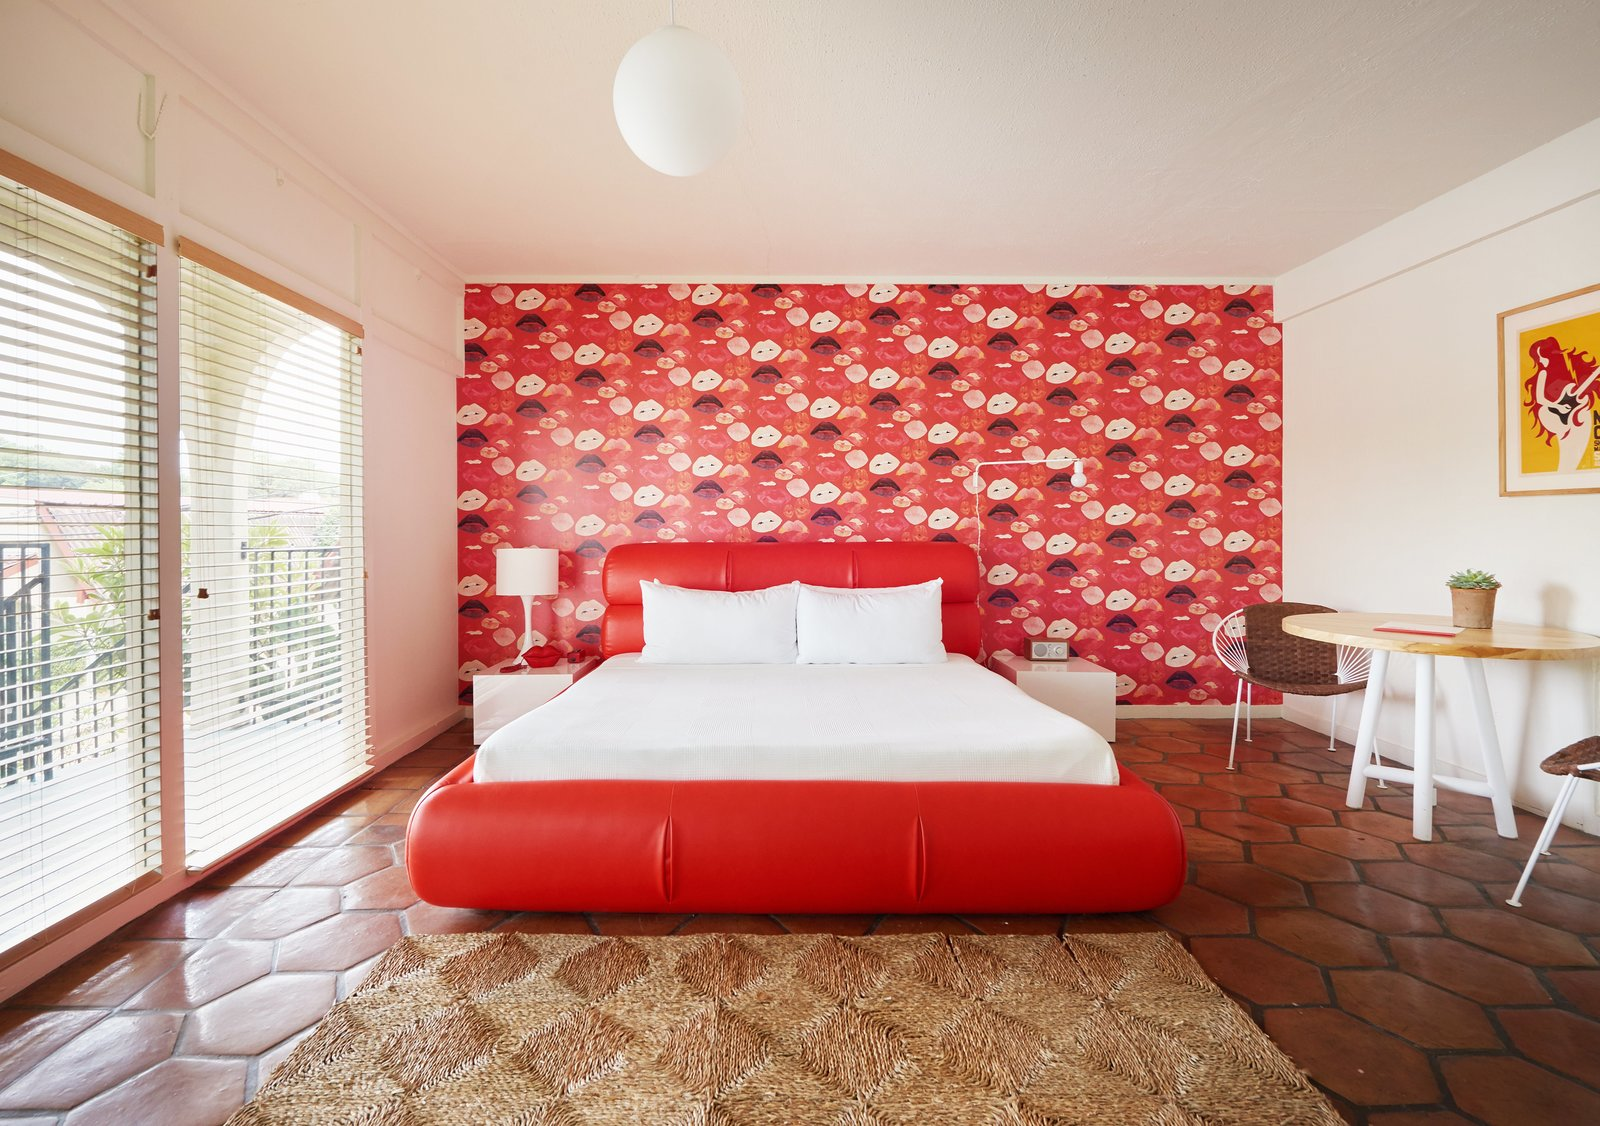 Photo 1 of 13 in The Rejuvenated Austin Motel Welcomes Guests With Upbeat, Midcentury-Modern Vibes